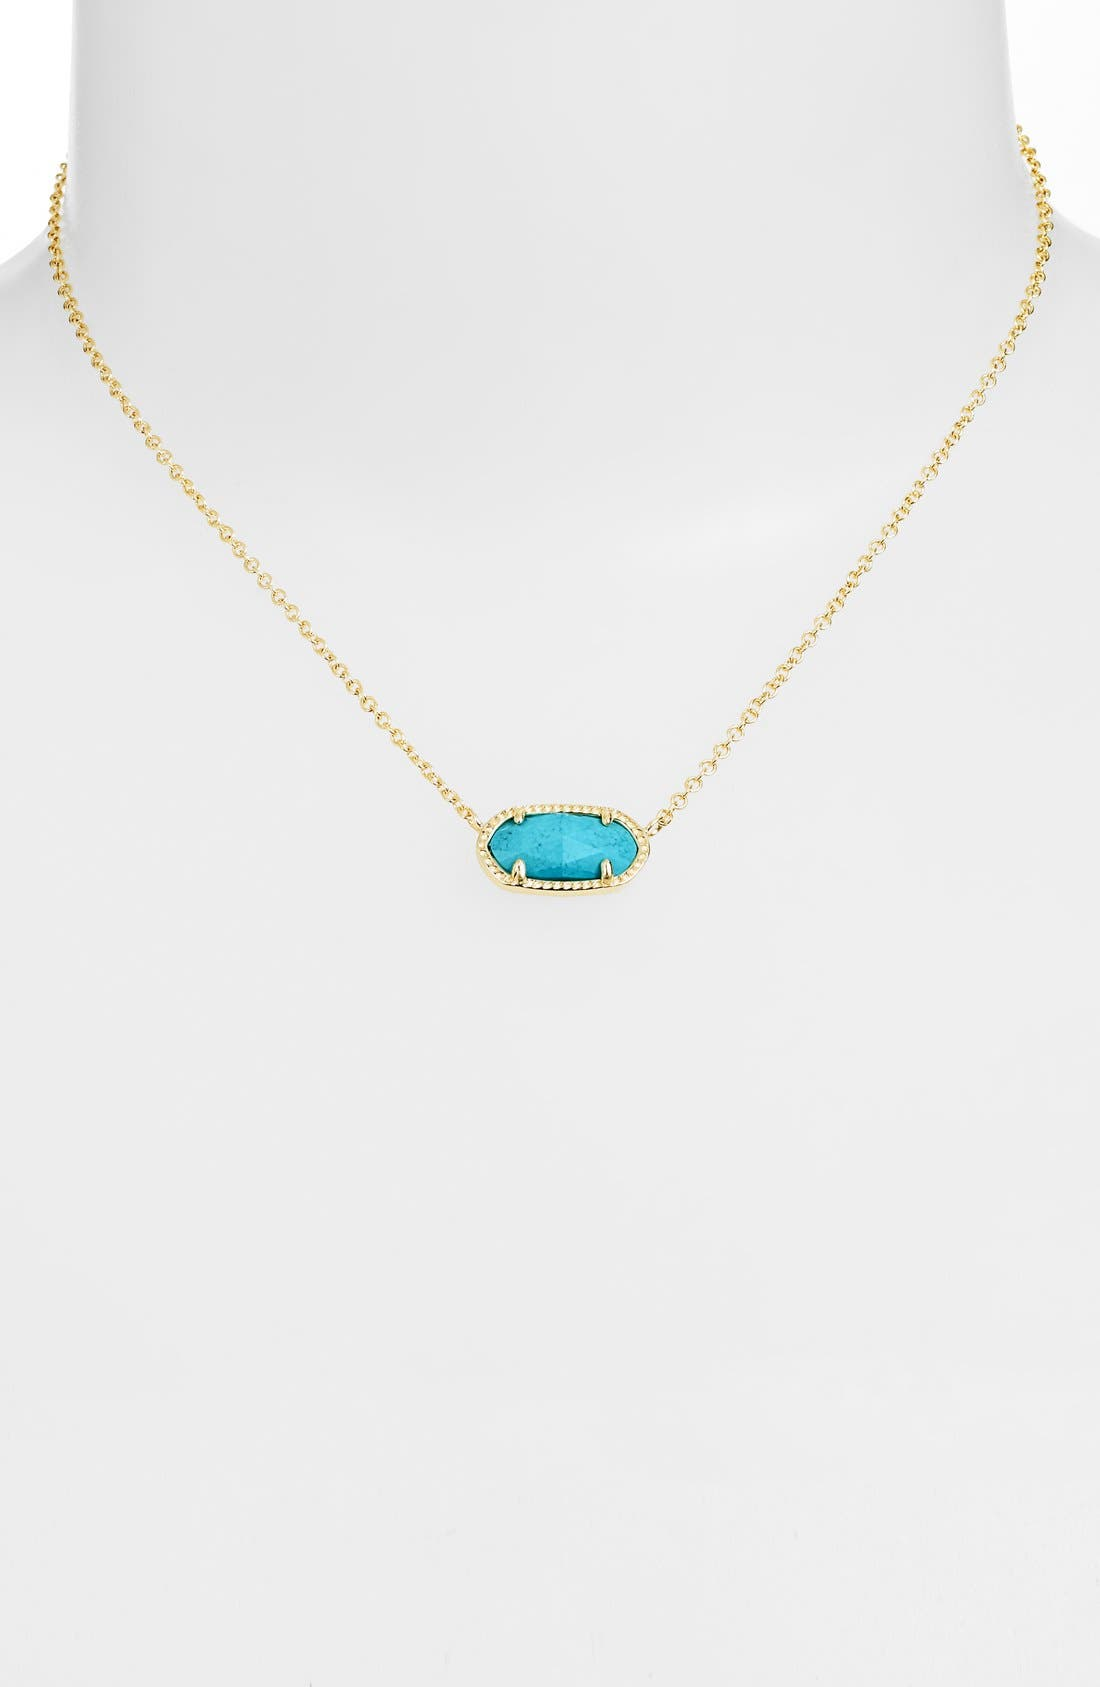 Main Image - Kendra Scott Elisa Pendant Necklace